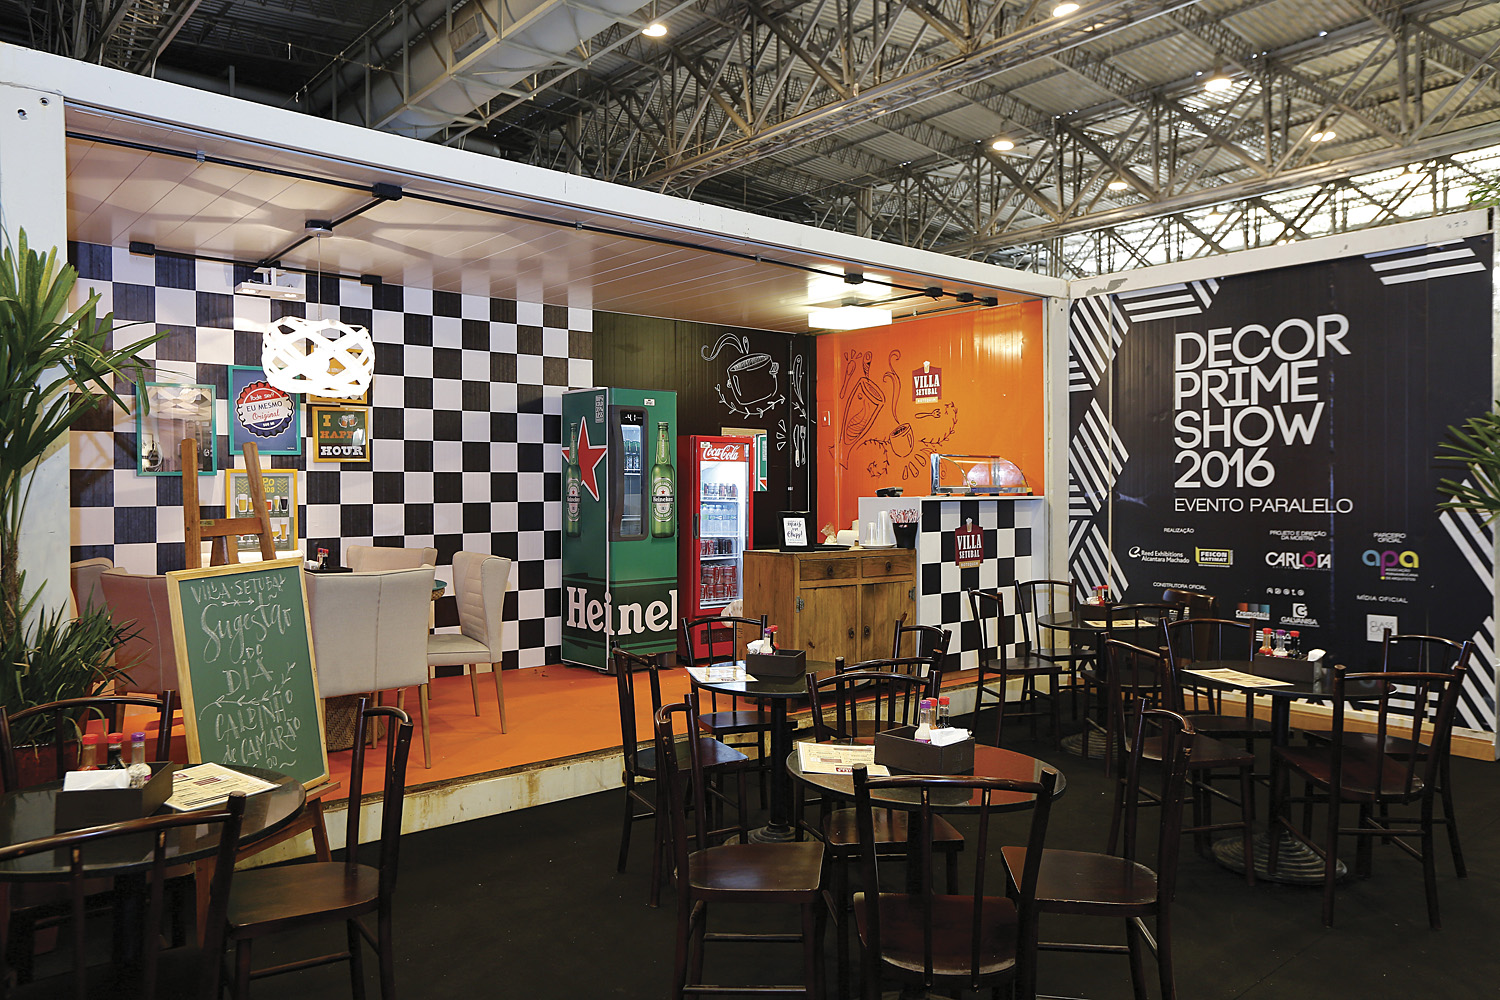 Vila setubal bar por amaral tenorio no decor prime show 2016